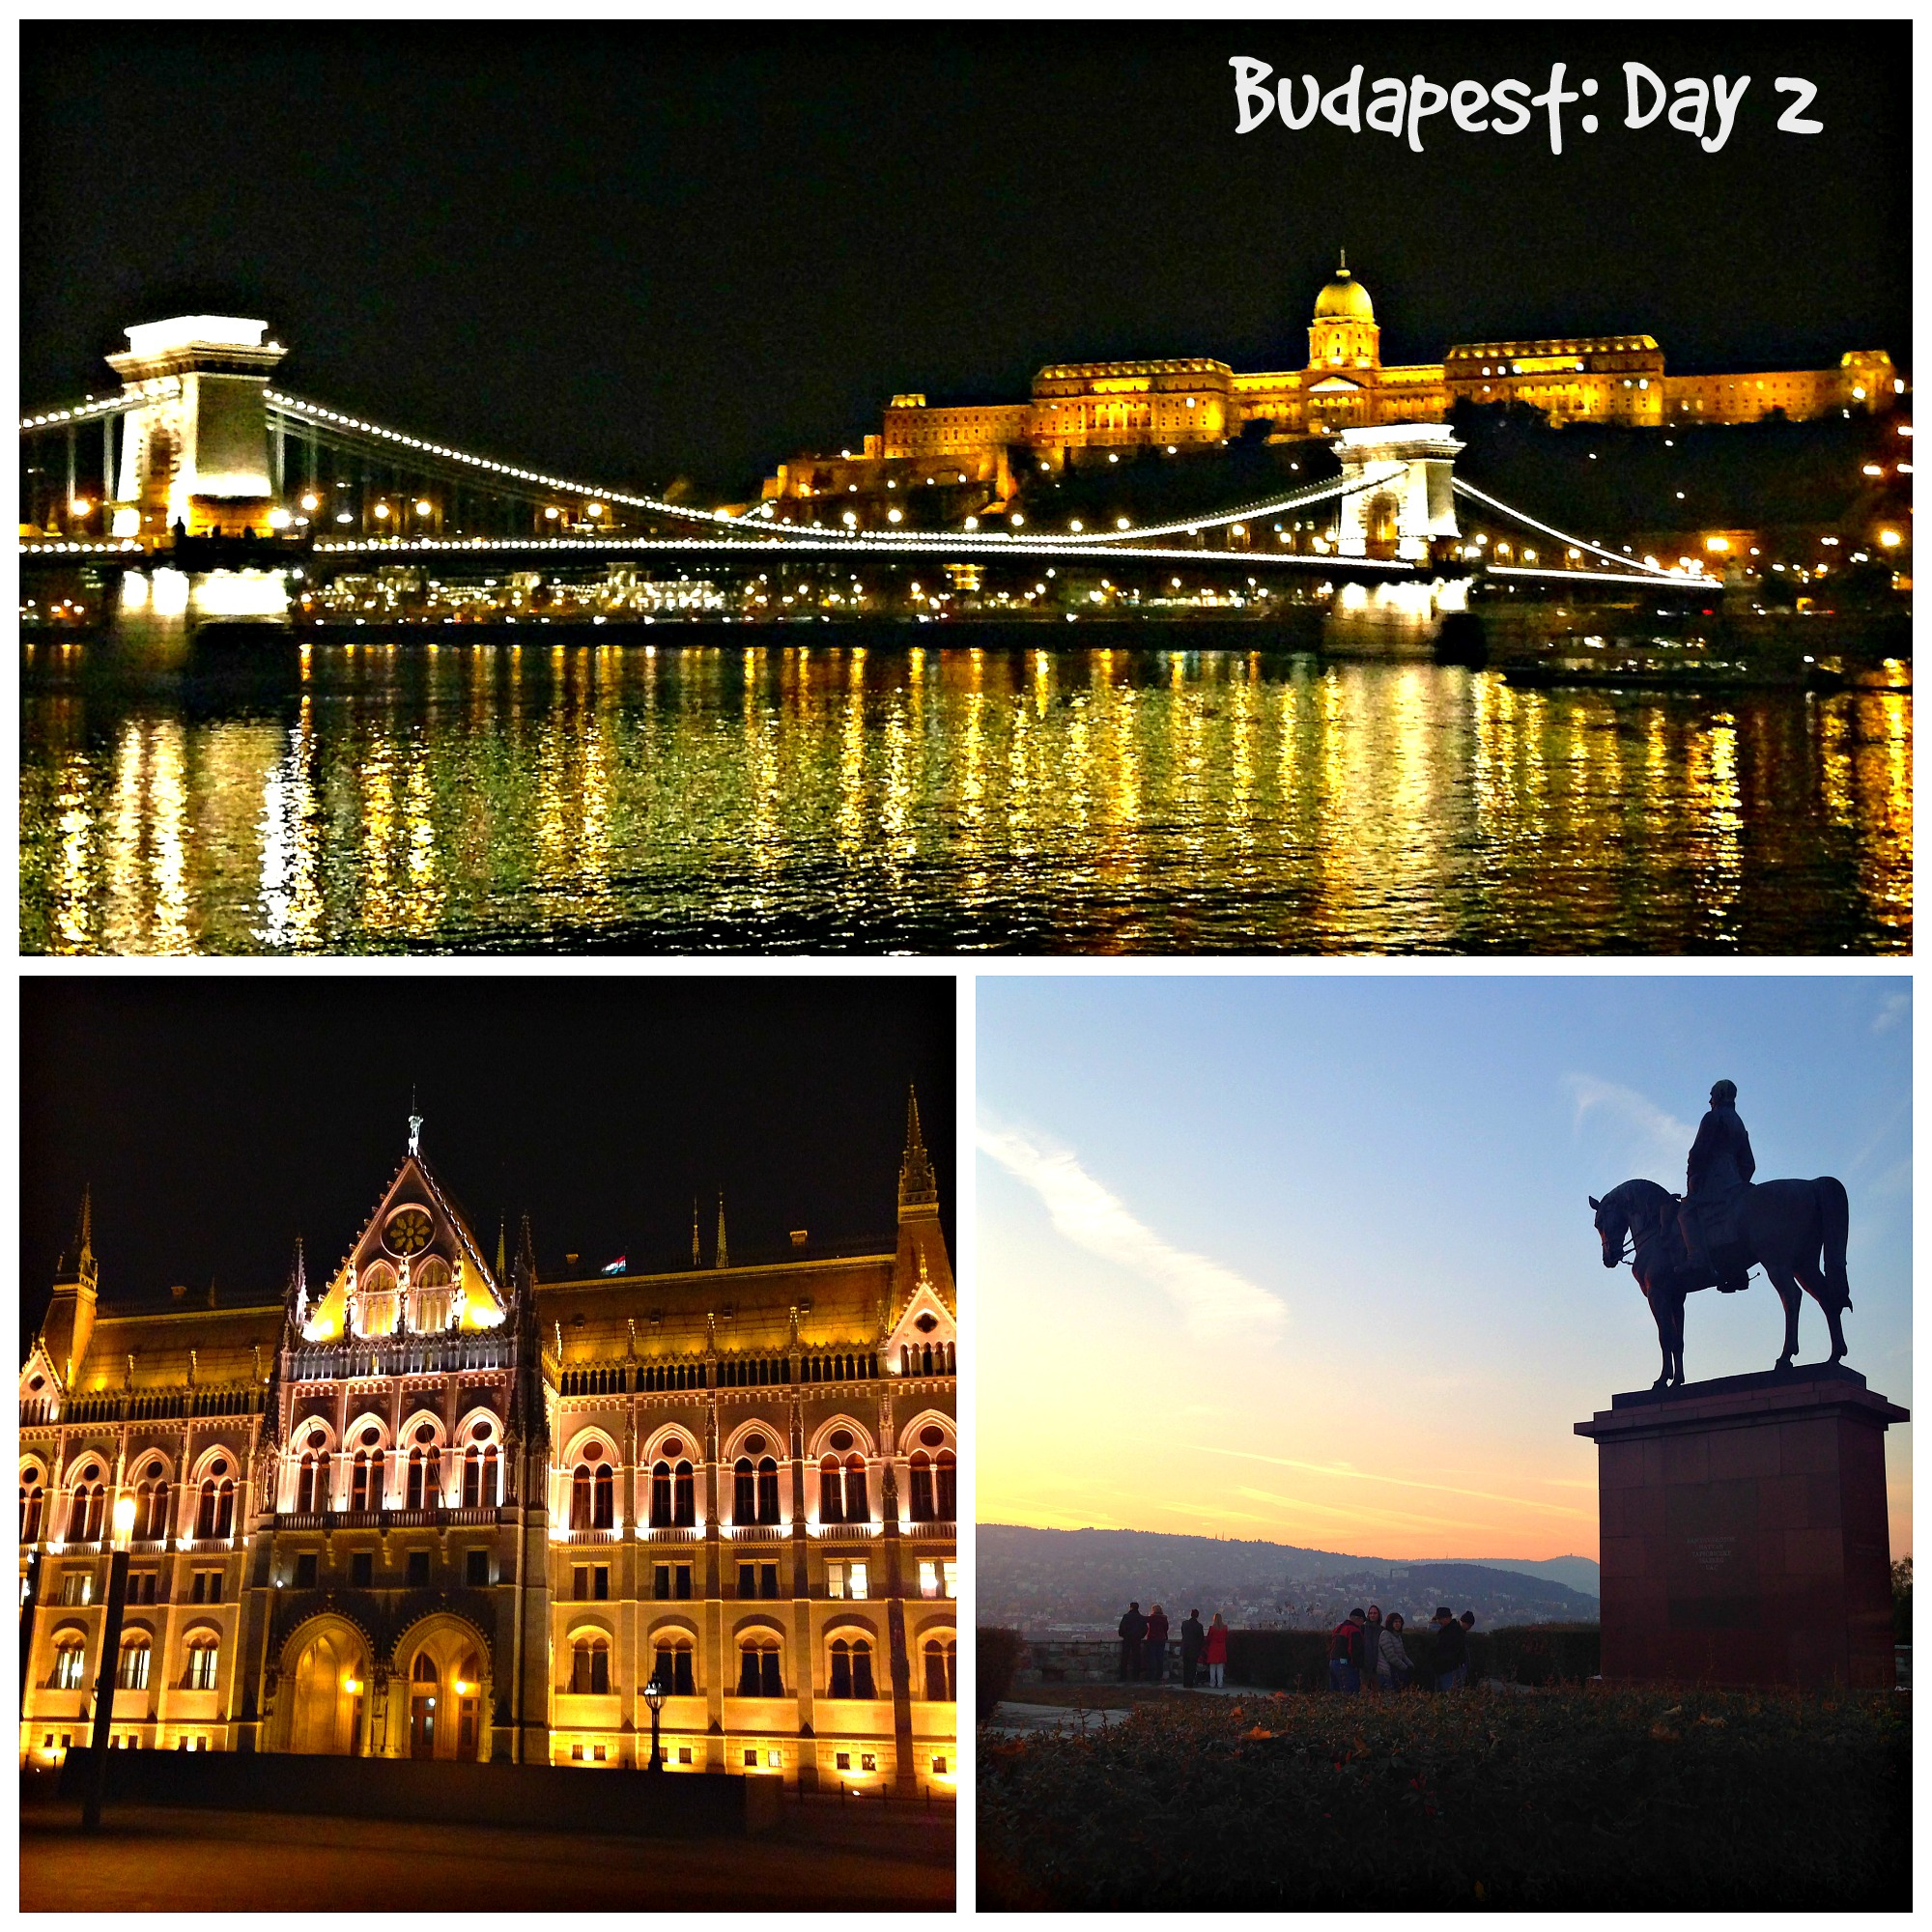 Széchenyi Chain Bridge, Buda Castle, Parliament, & Buda Viewpoint